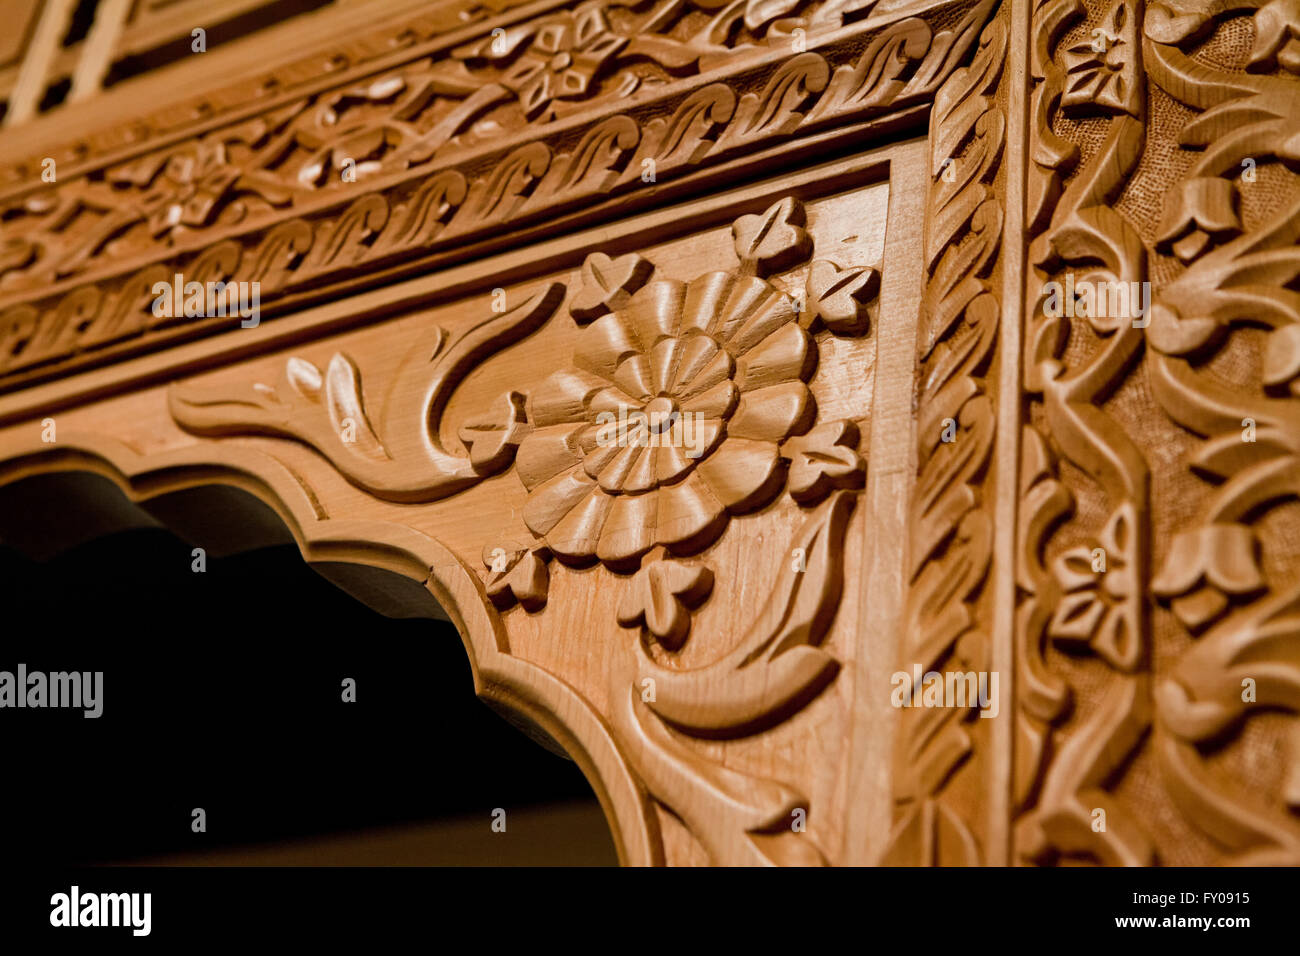 Afghan wood carving by Nasser Mansouri (Turquoise Mountain) - Stock Image